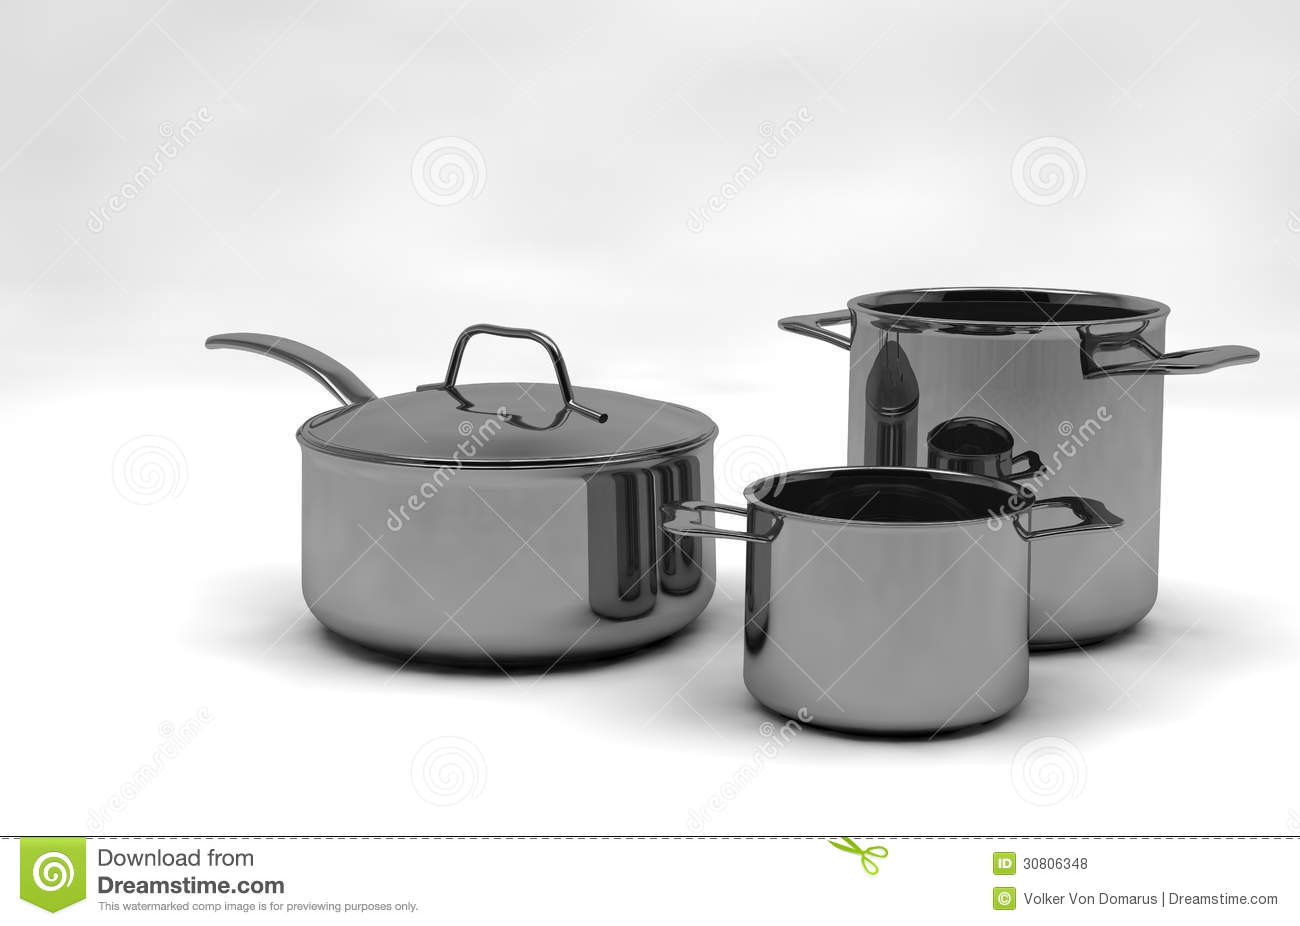 steel pots and pans royalty free stock photos image 30806348. Black Bedroom Furniture Sets. Home Design Ideas